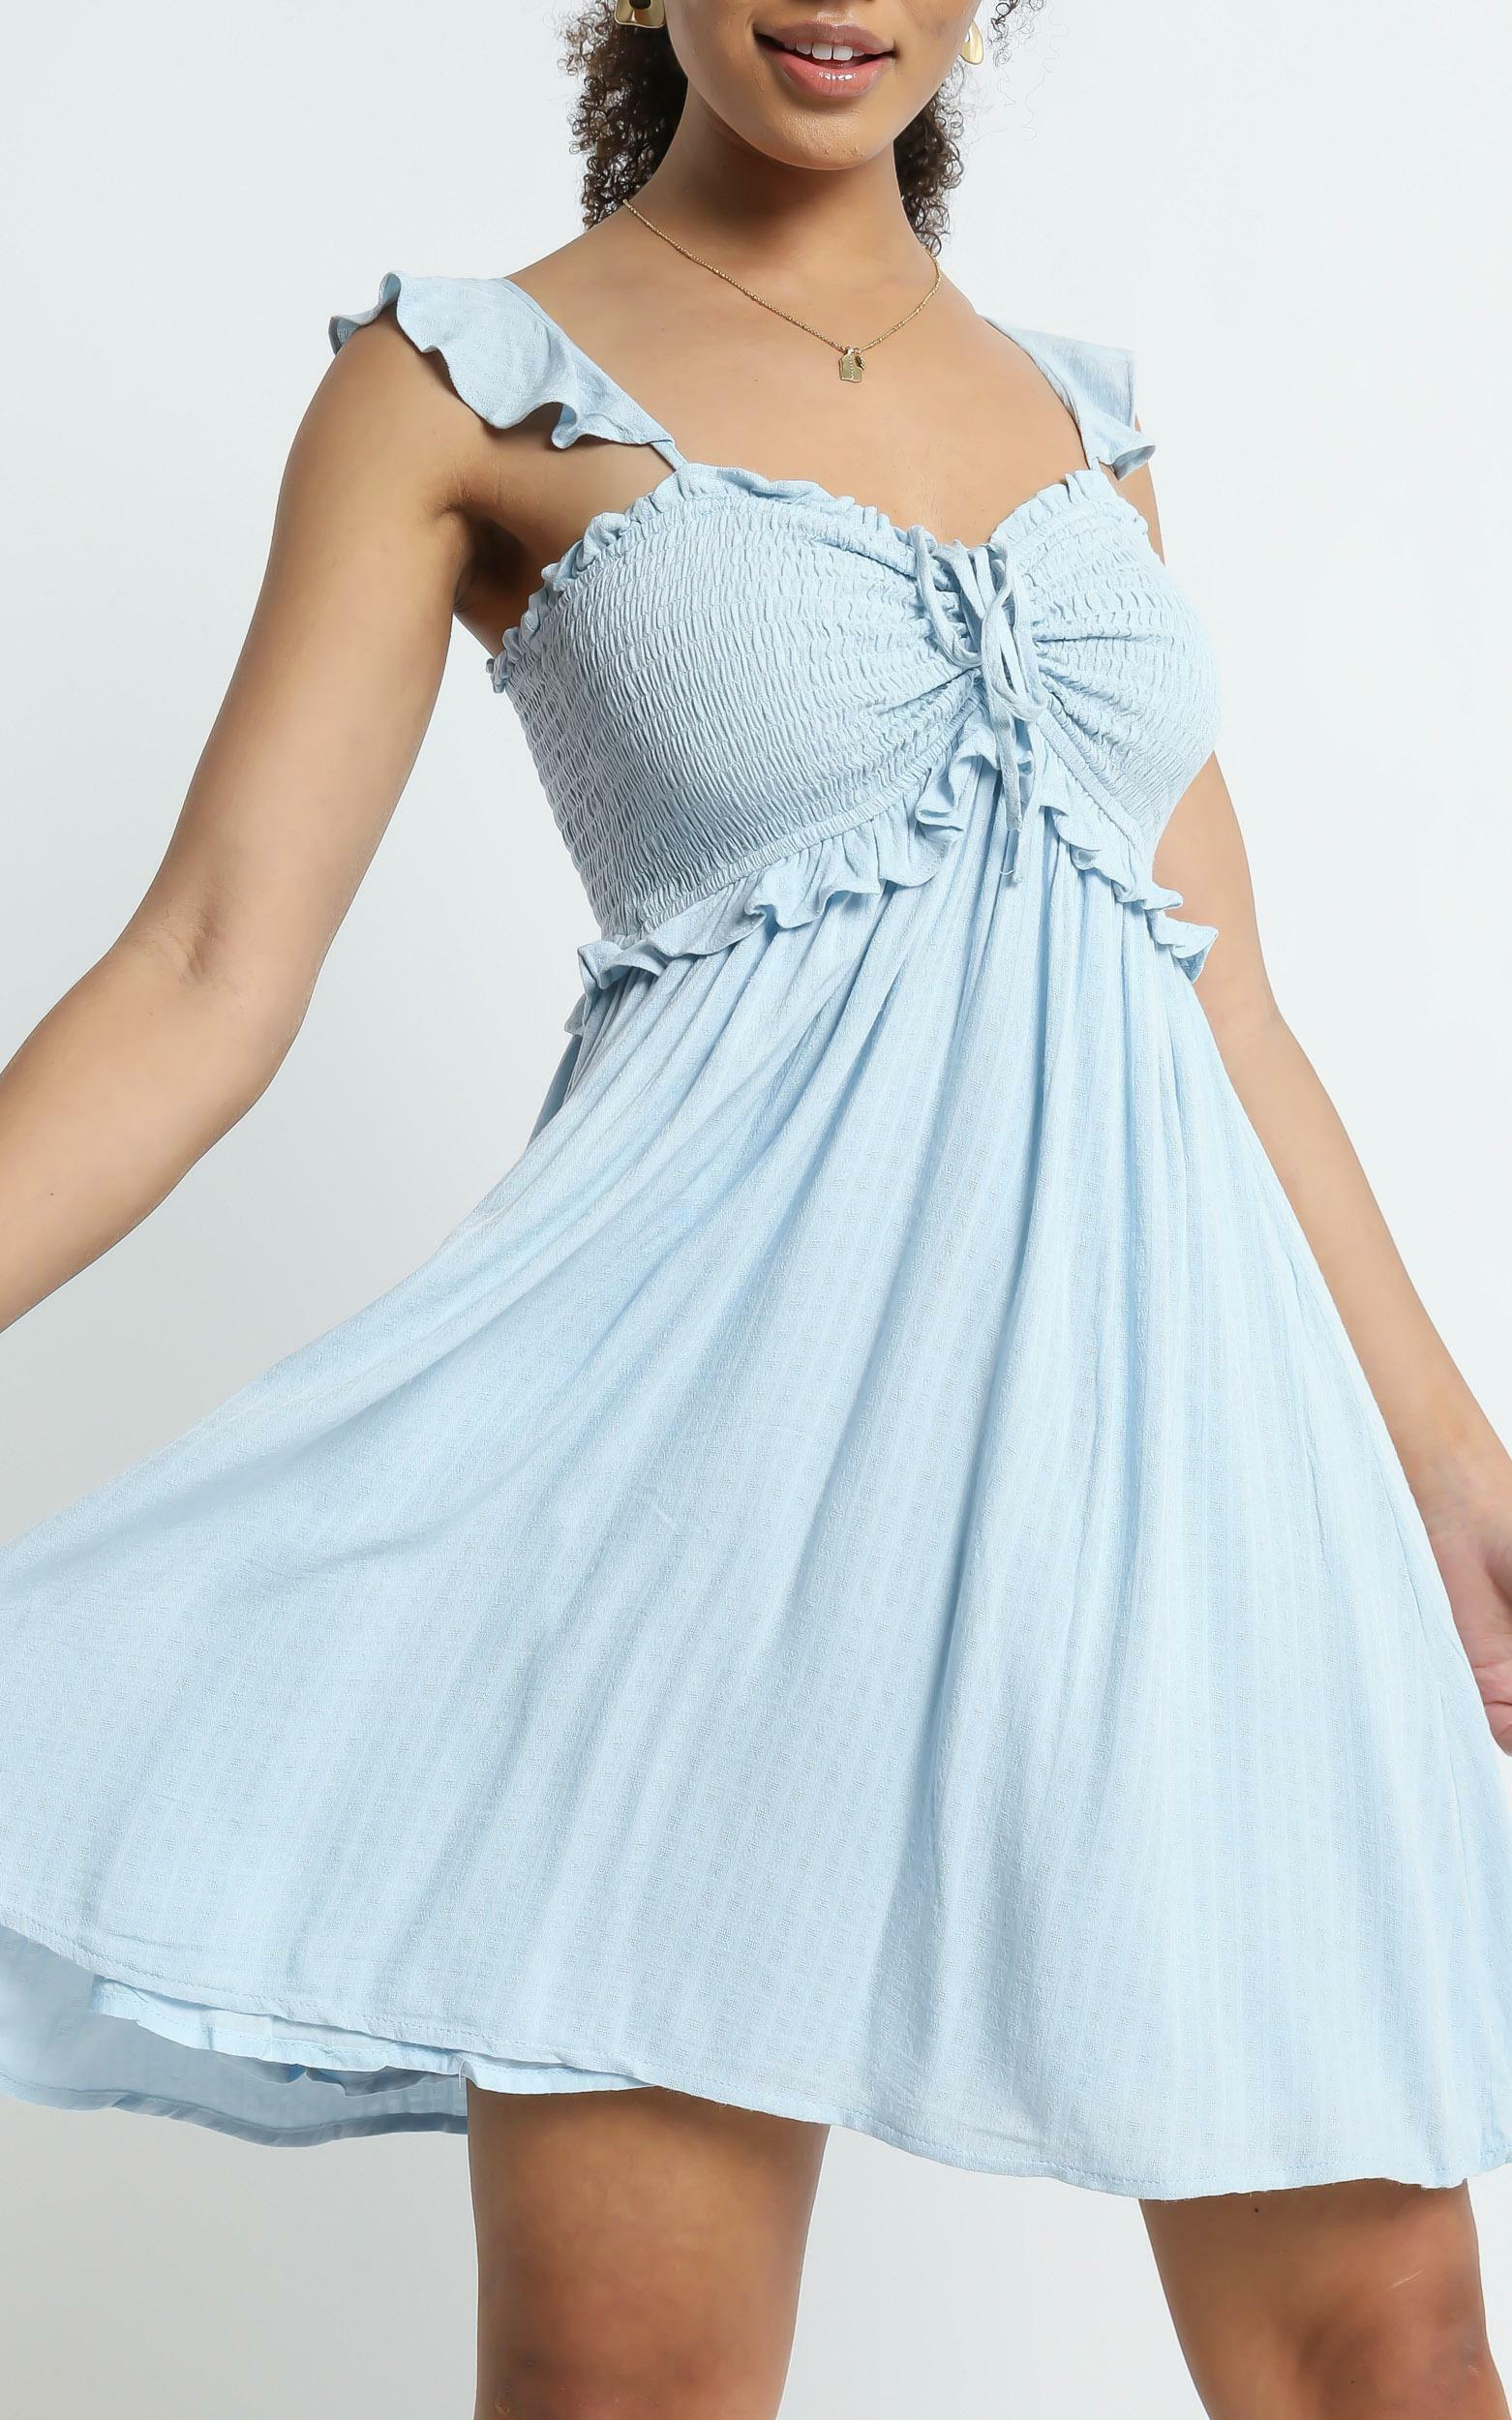 Rissa Dress in Blue - 6 (XS), Blue, hi-res image number null